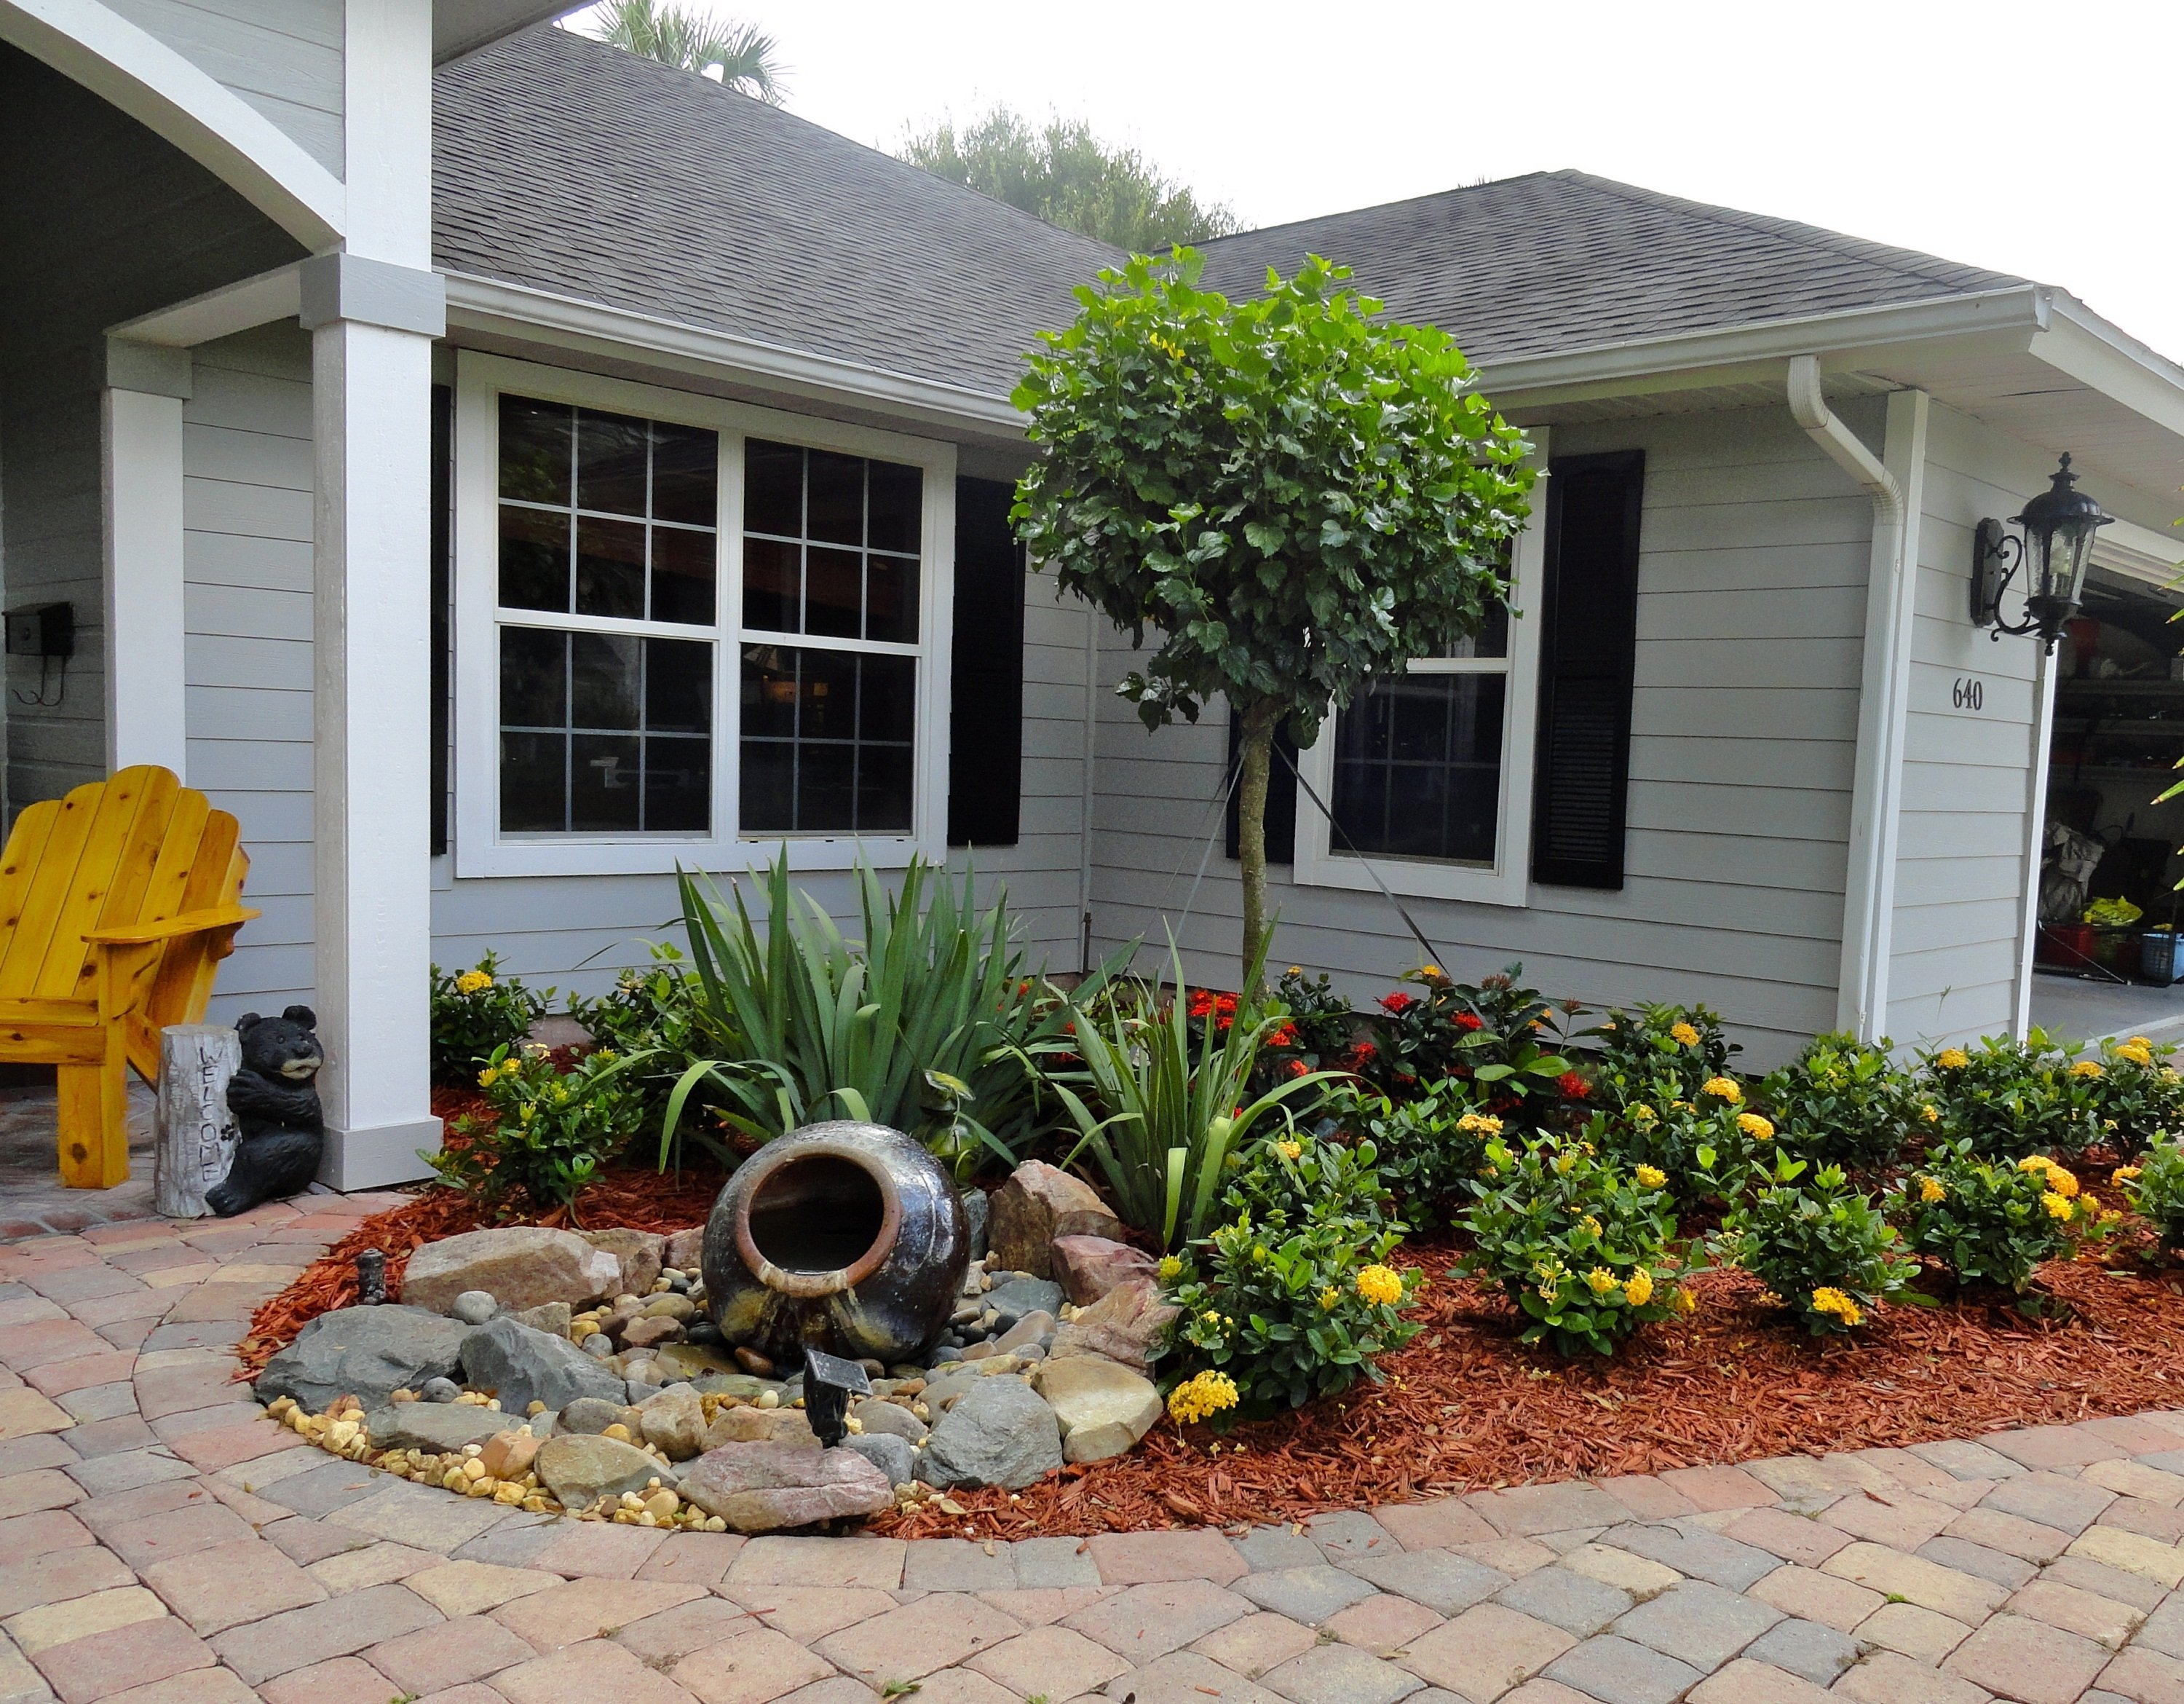 10 Attractive Simple Front Yard Landscaping Ideas Pictures excellent simple landscaping ideas for small front yards pictures 2